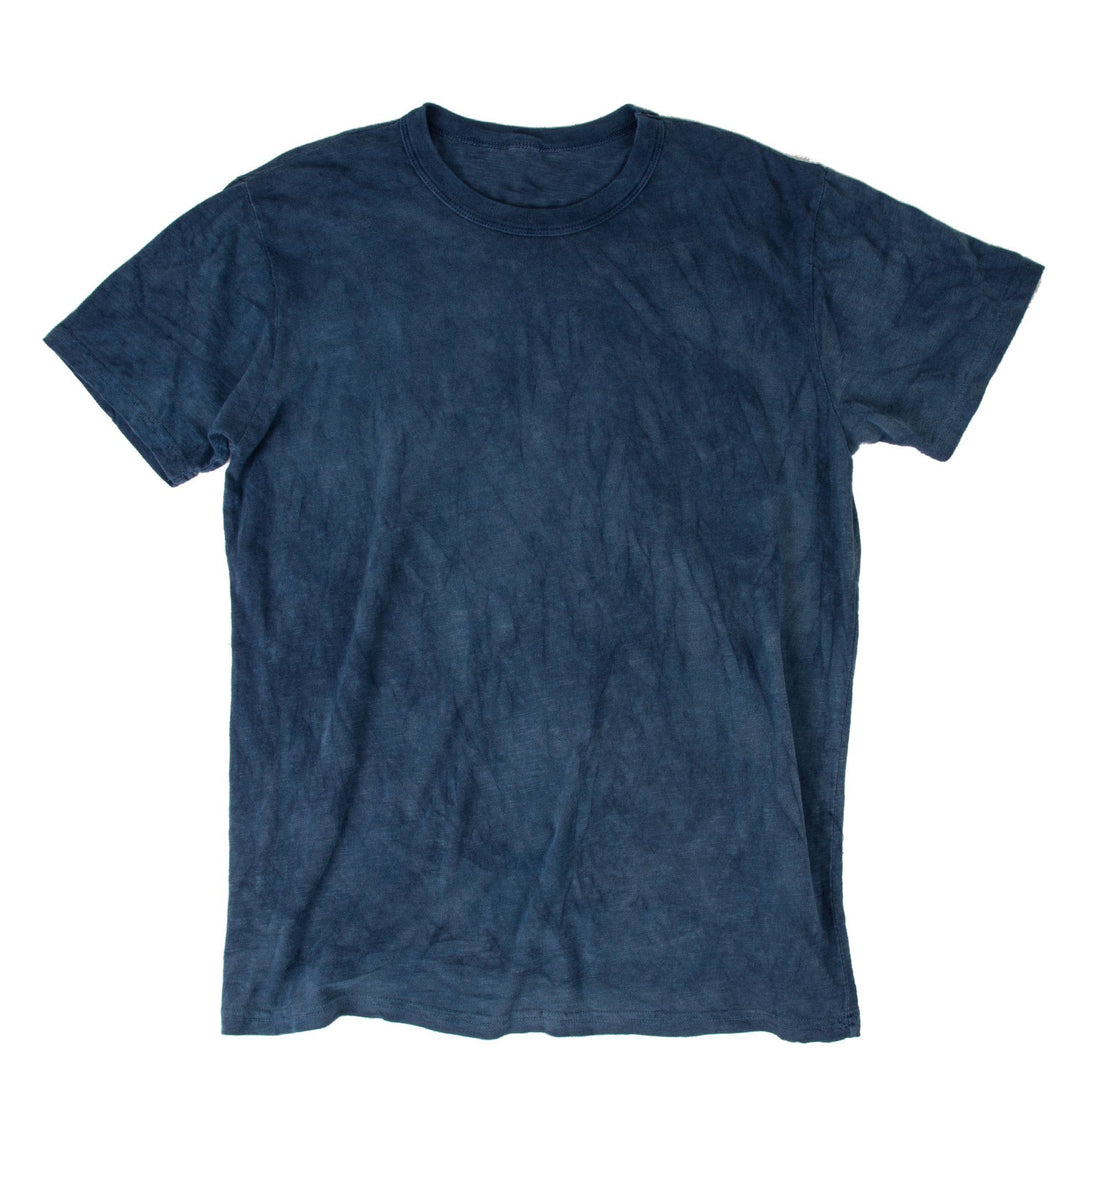 Kekai Tee - Tops - Iron and Resin